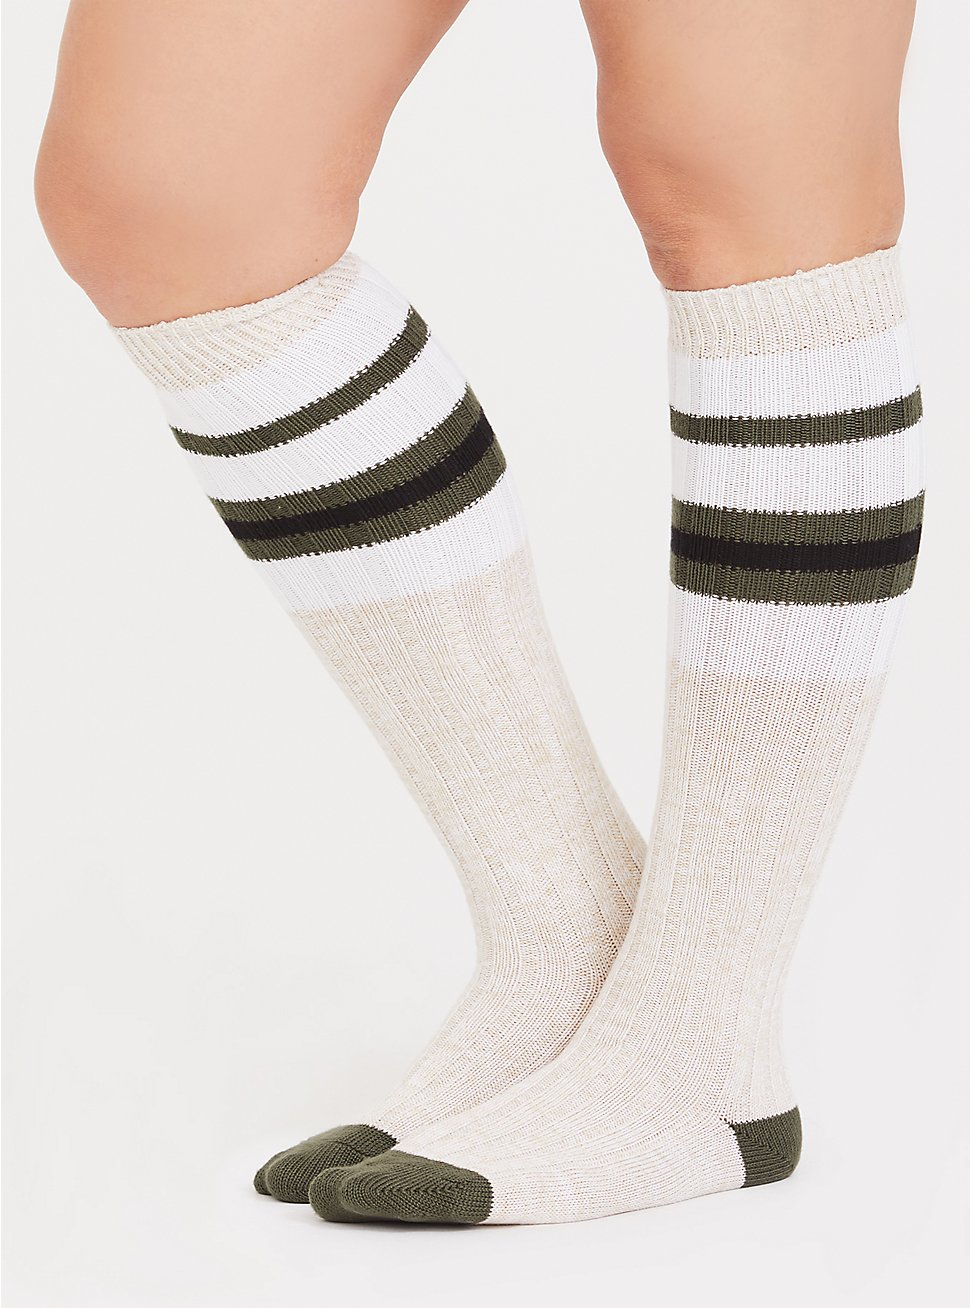 Tan & Olive Green Striped Knee High Socks, MULTI, hi-res